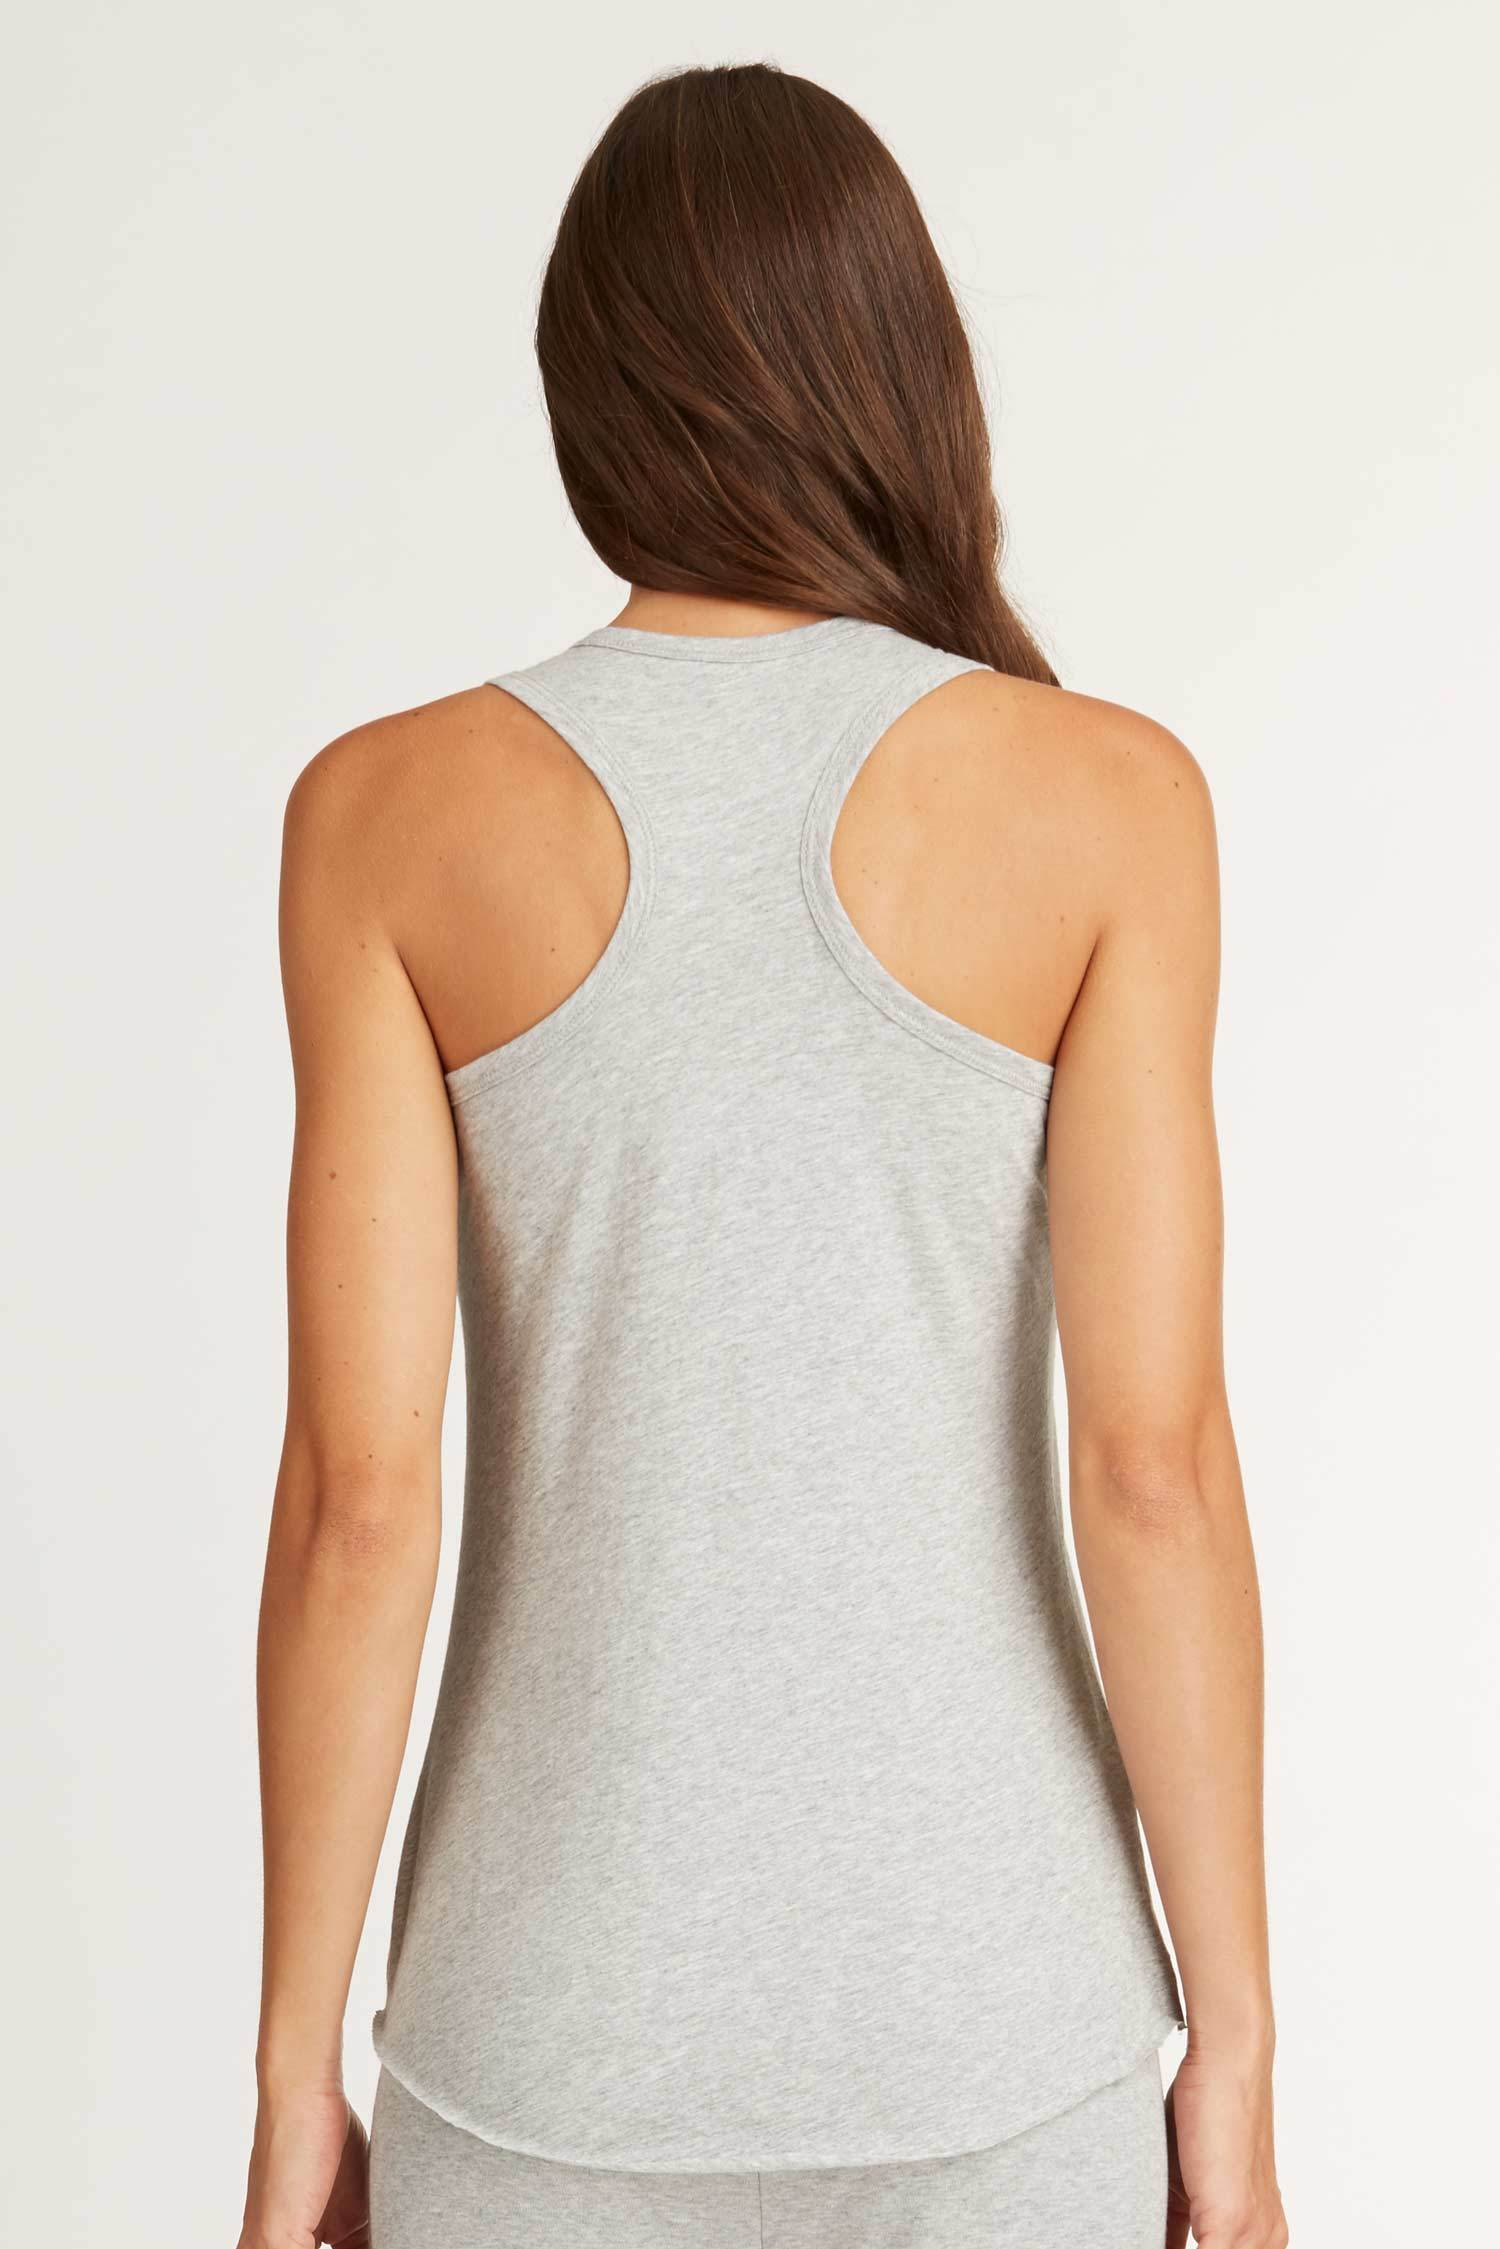 Womens Organic Cotton Top | Racer Back Tank | Gray